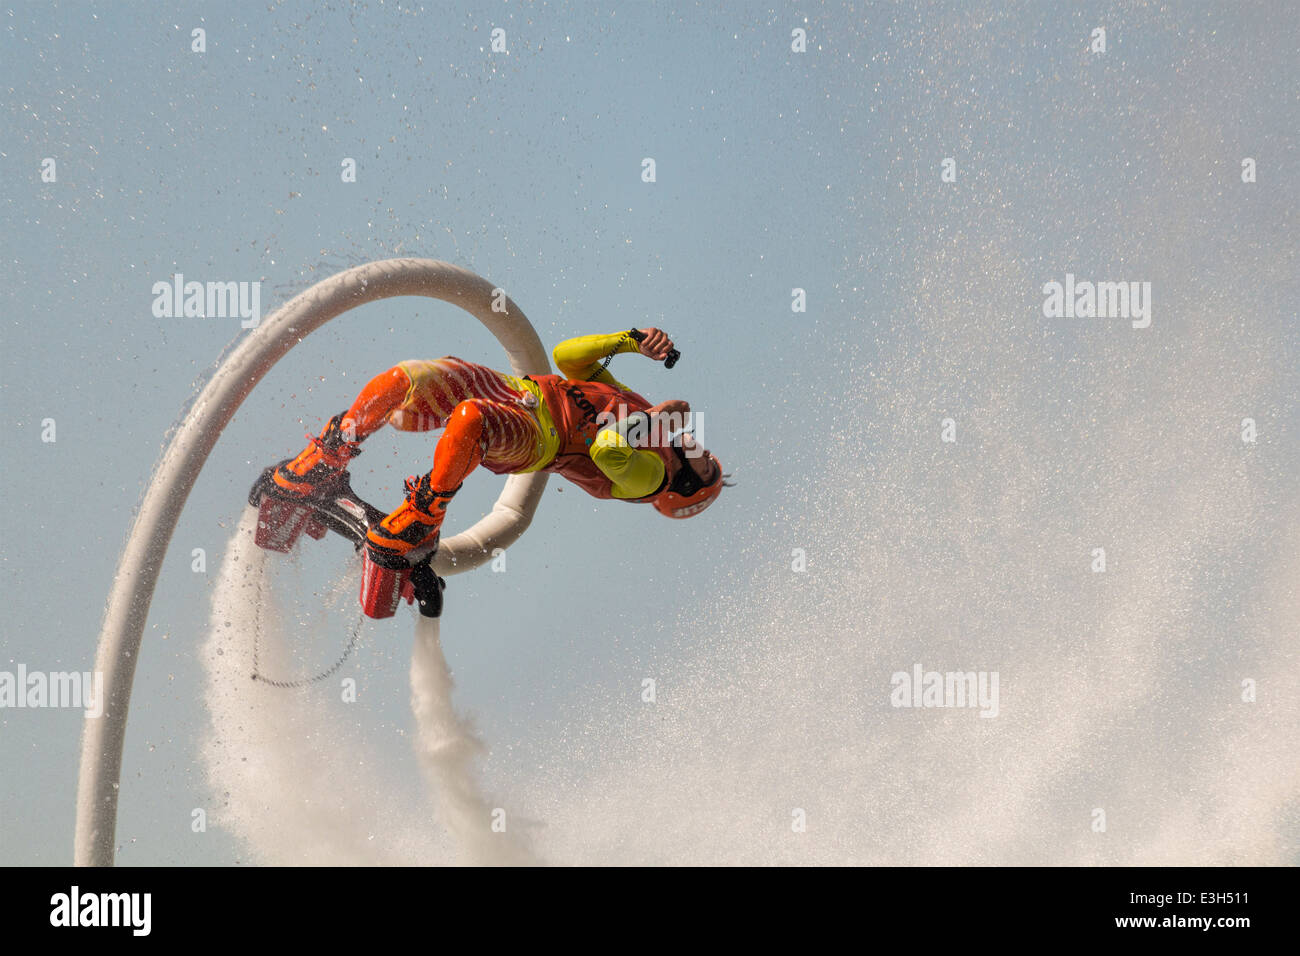 male-flyboarder-doing-a-backflip-at-the-north-american-flyboard-championships-E3H511.jpg